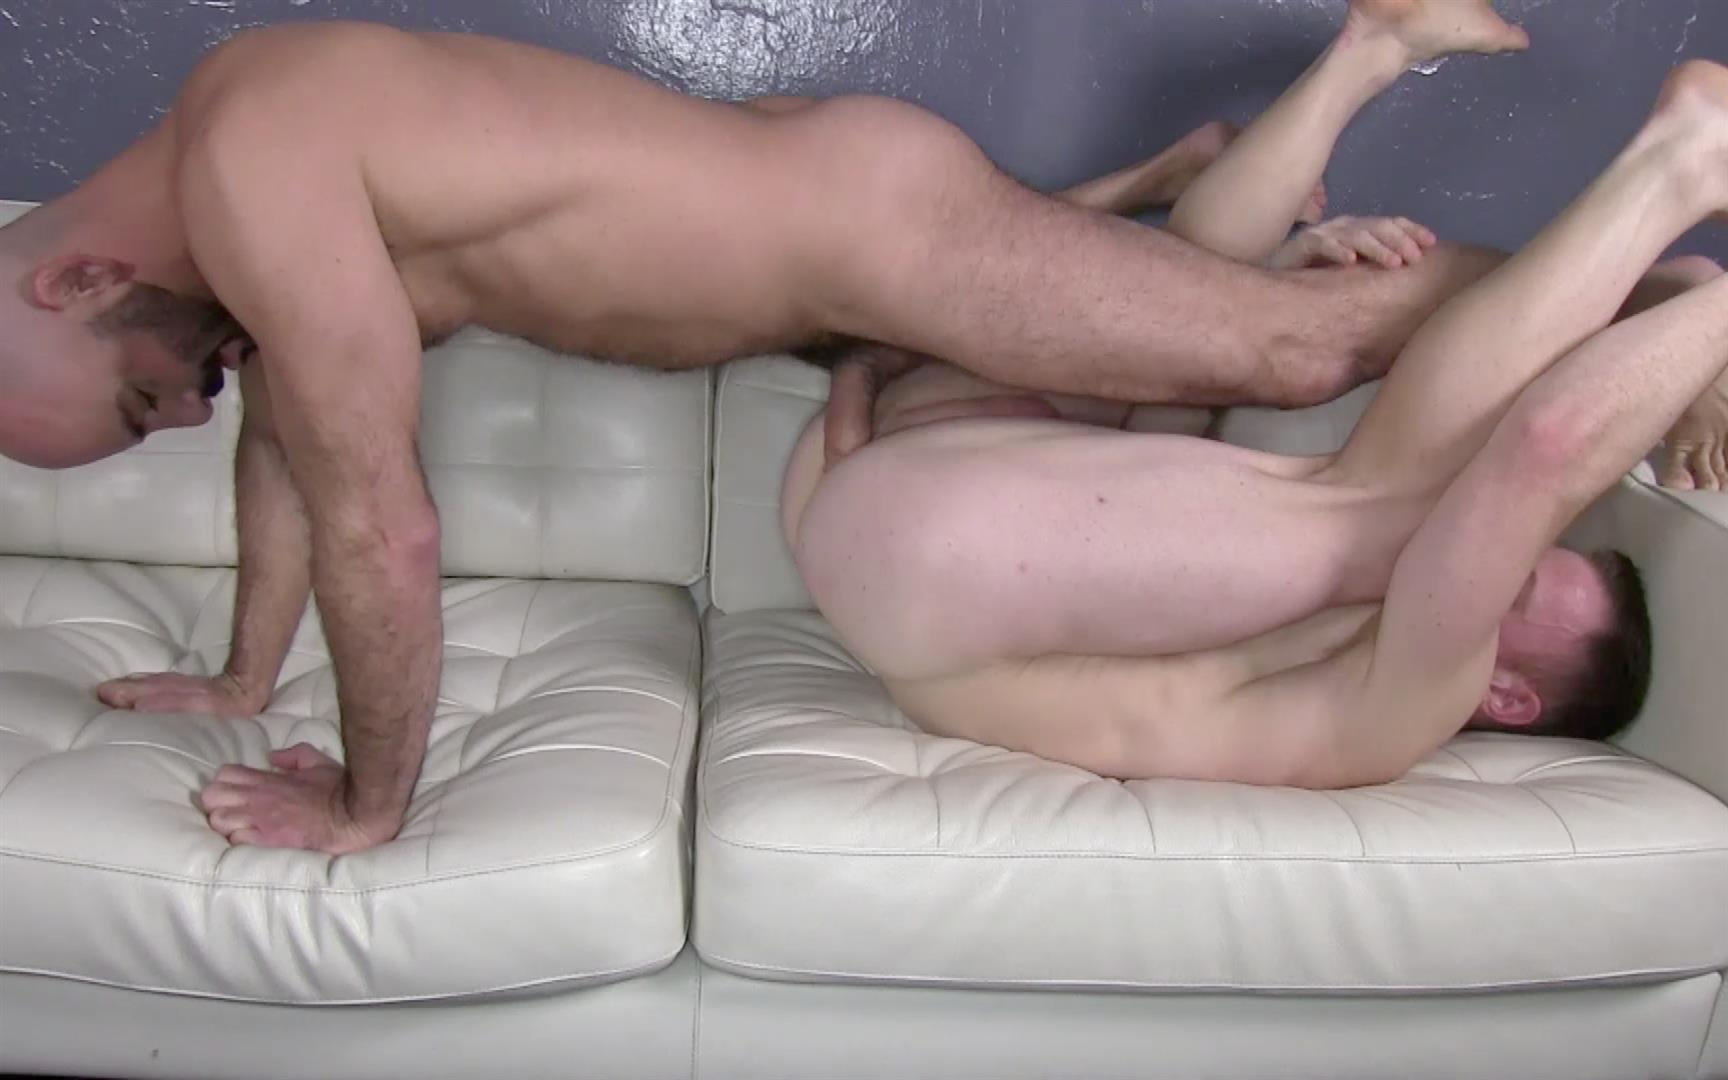 Raw Fuck Club Adam Russo and Saxon West masculine guys barebacking Amateur Gay Porn 2 Red Headed Muscle Hunk Saxon West Takes A Big Raw Cock Up The Ass